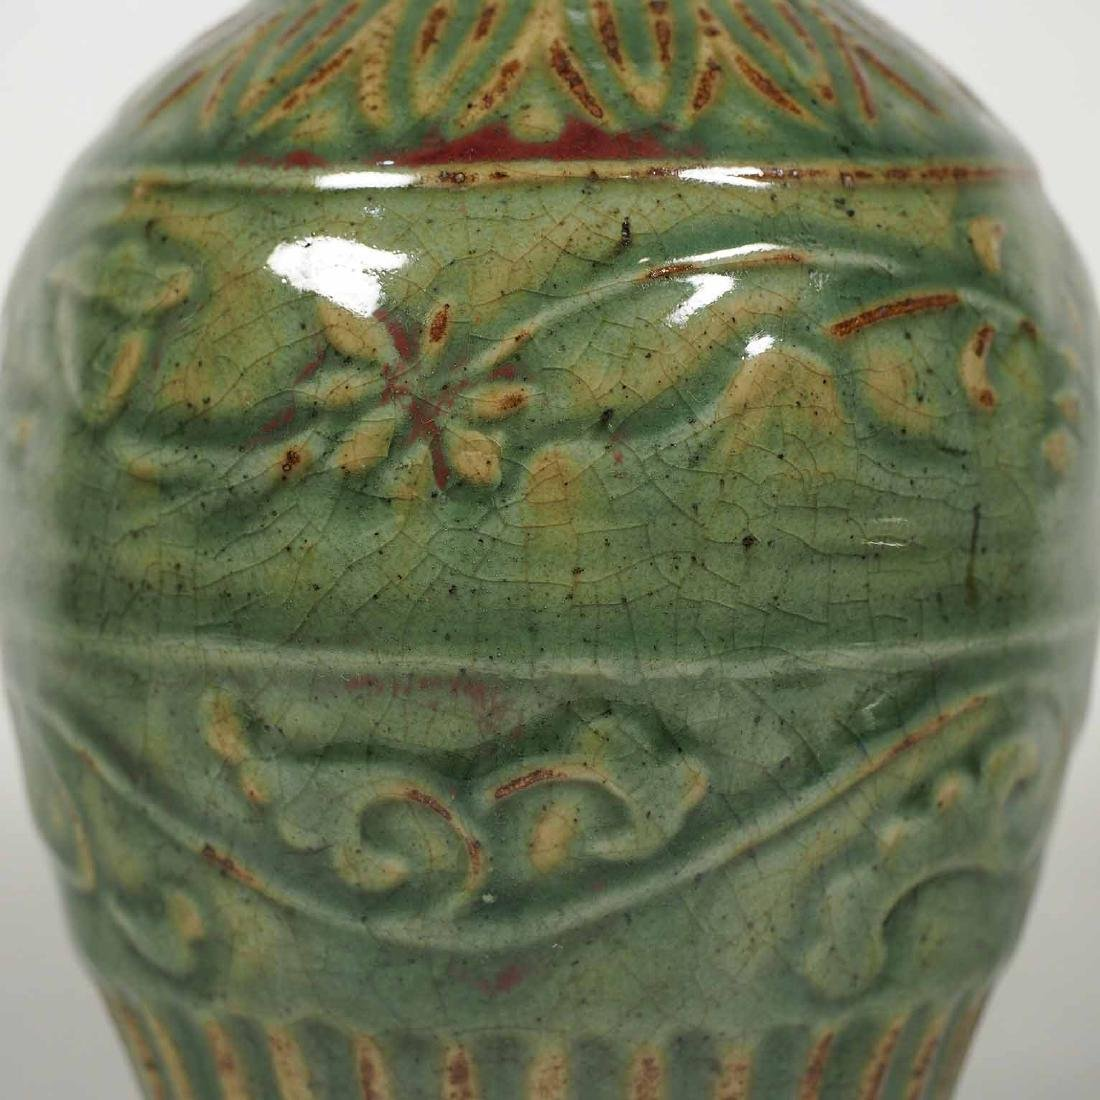 Longquan Vase, Southern Song Dynasty - 5